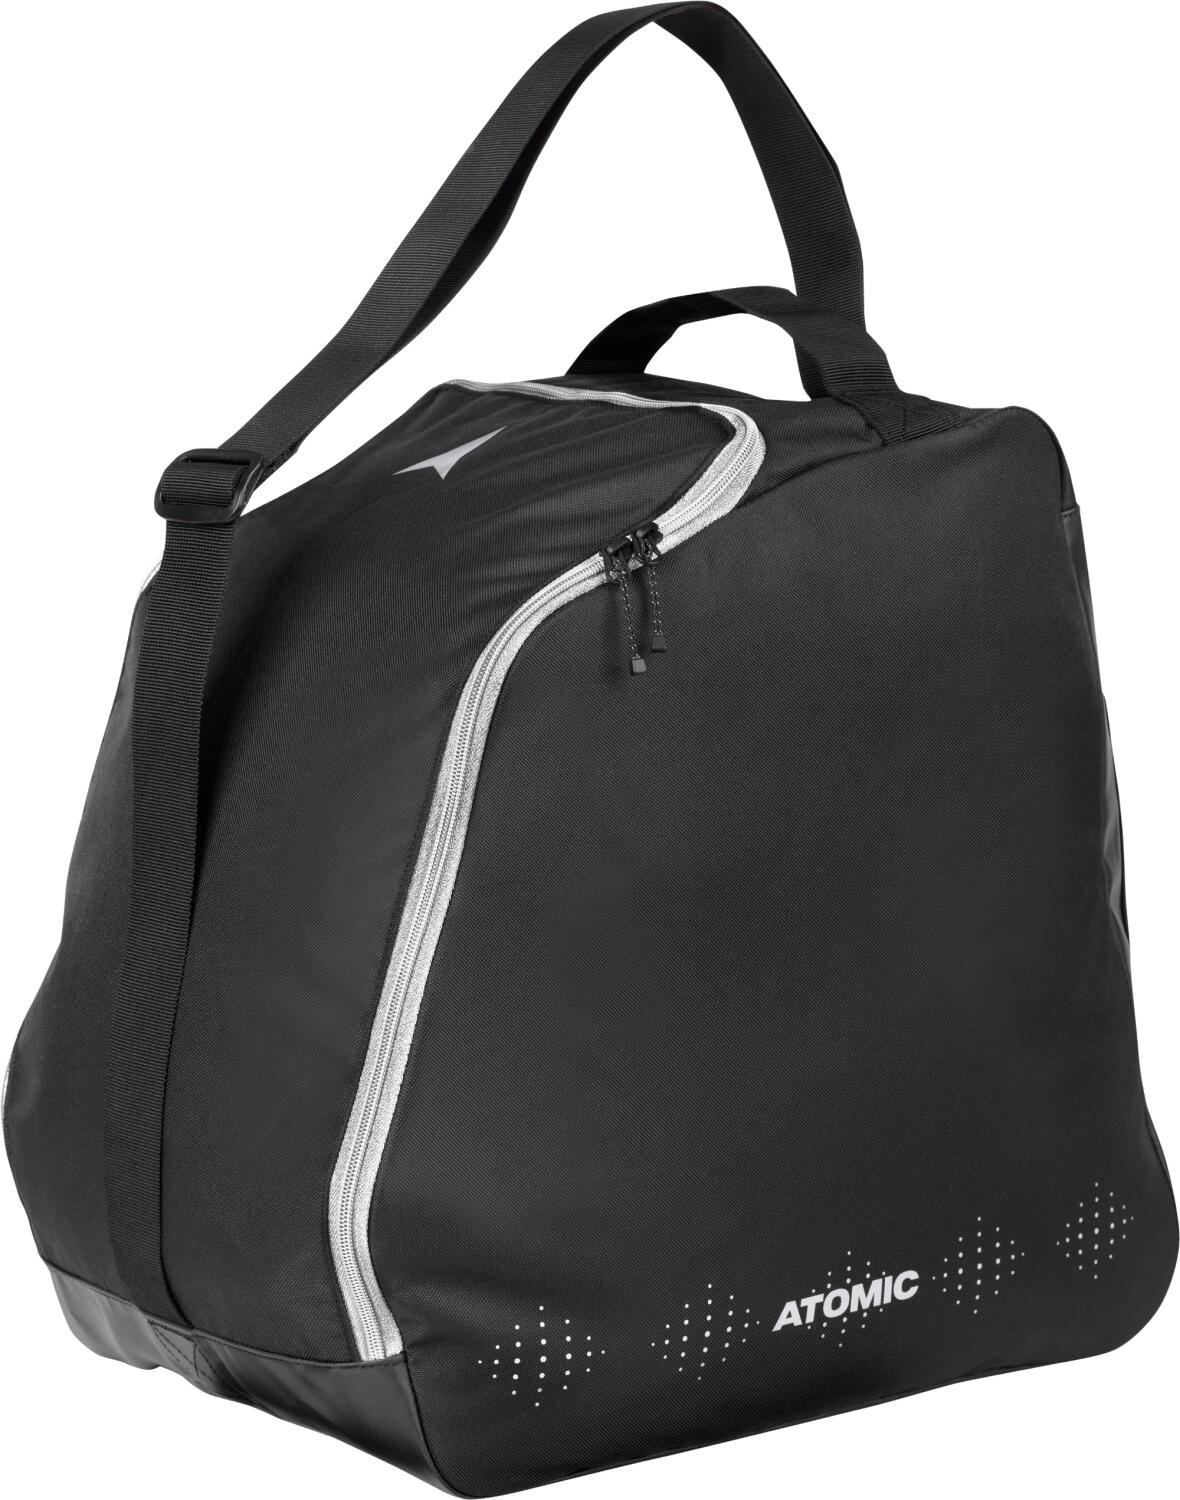 Atomic Boot Bag Cloud Skischuhtasche